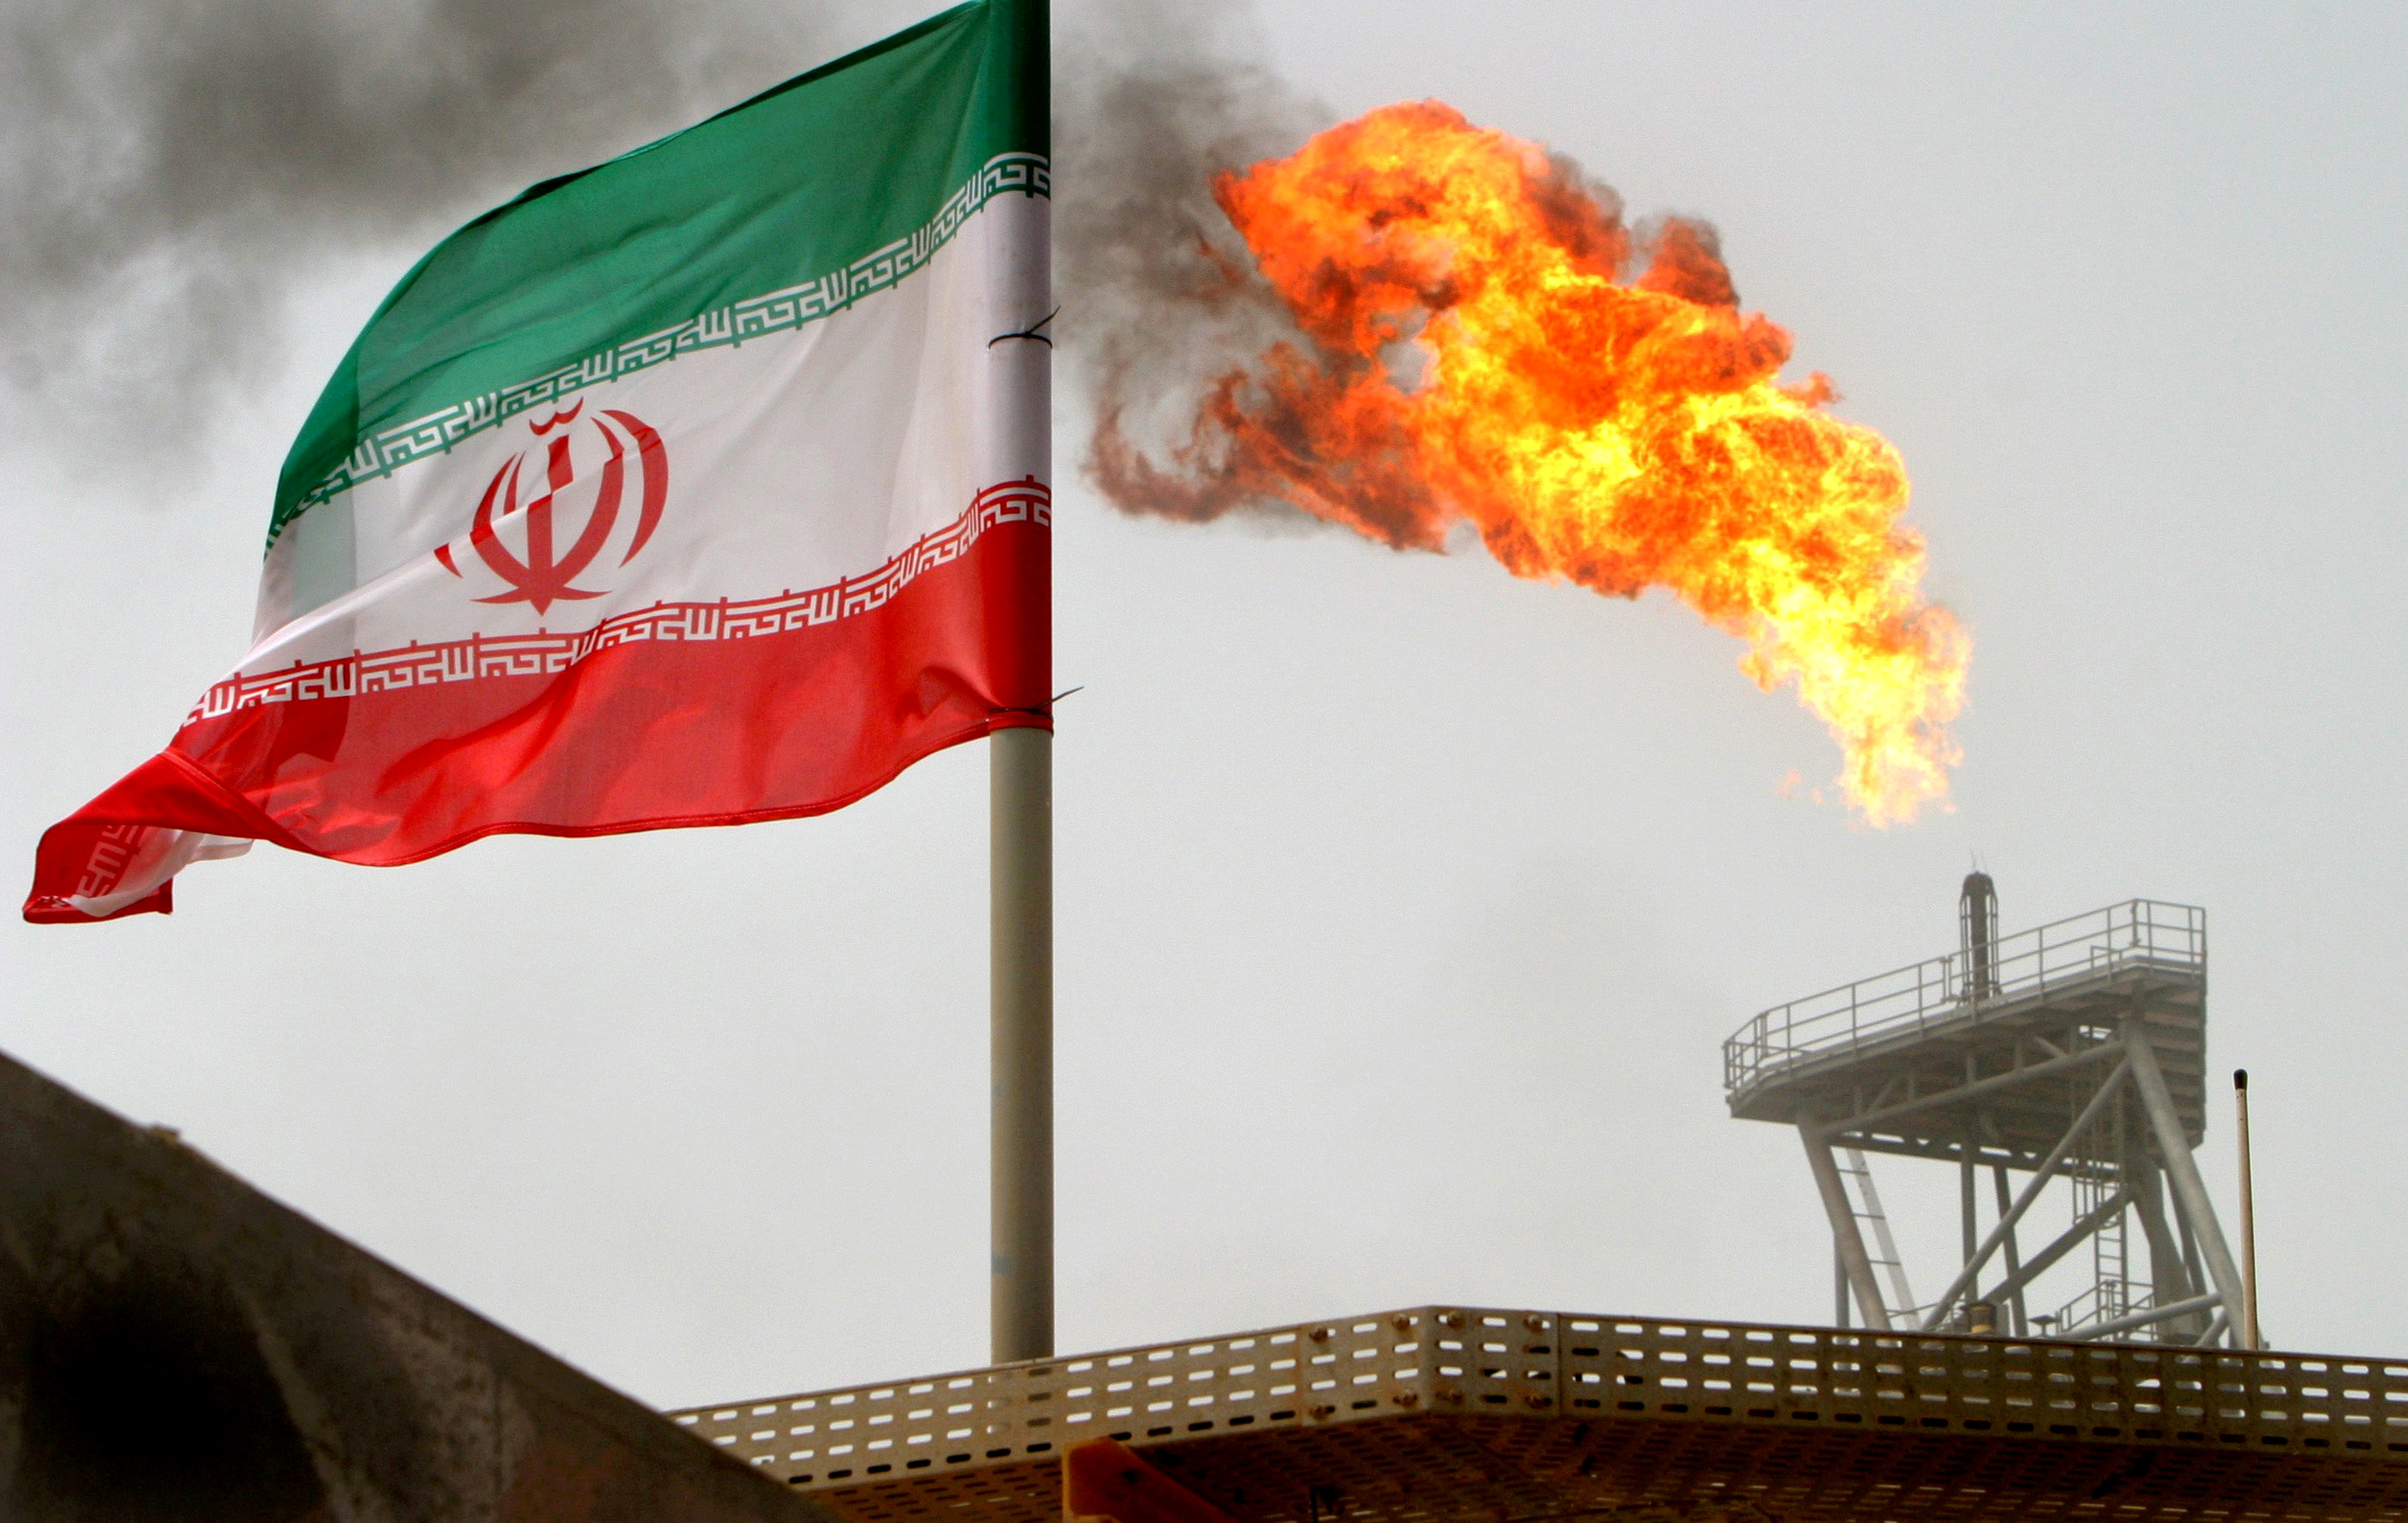 FILE PHOTO: A gas flare on an oil production platform in the Soroush oil fields is seen alongside an Iranian flag in the Persian Gulf, Iran, July 25, 2005. To match Exclusive OPEC-OIL/ REUTERS/Raheb Homavandi/File Photo/File Photo